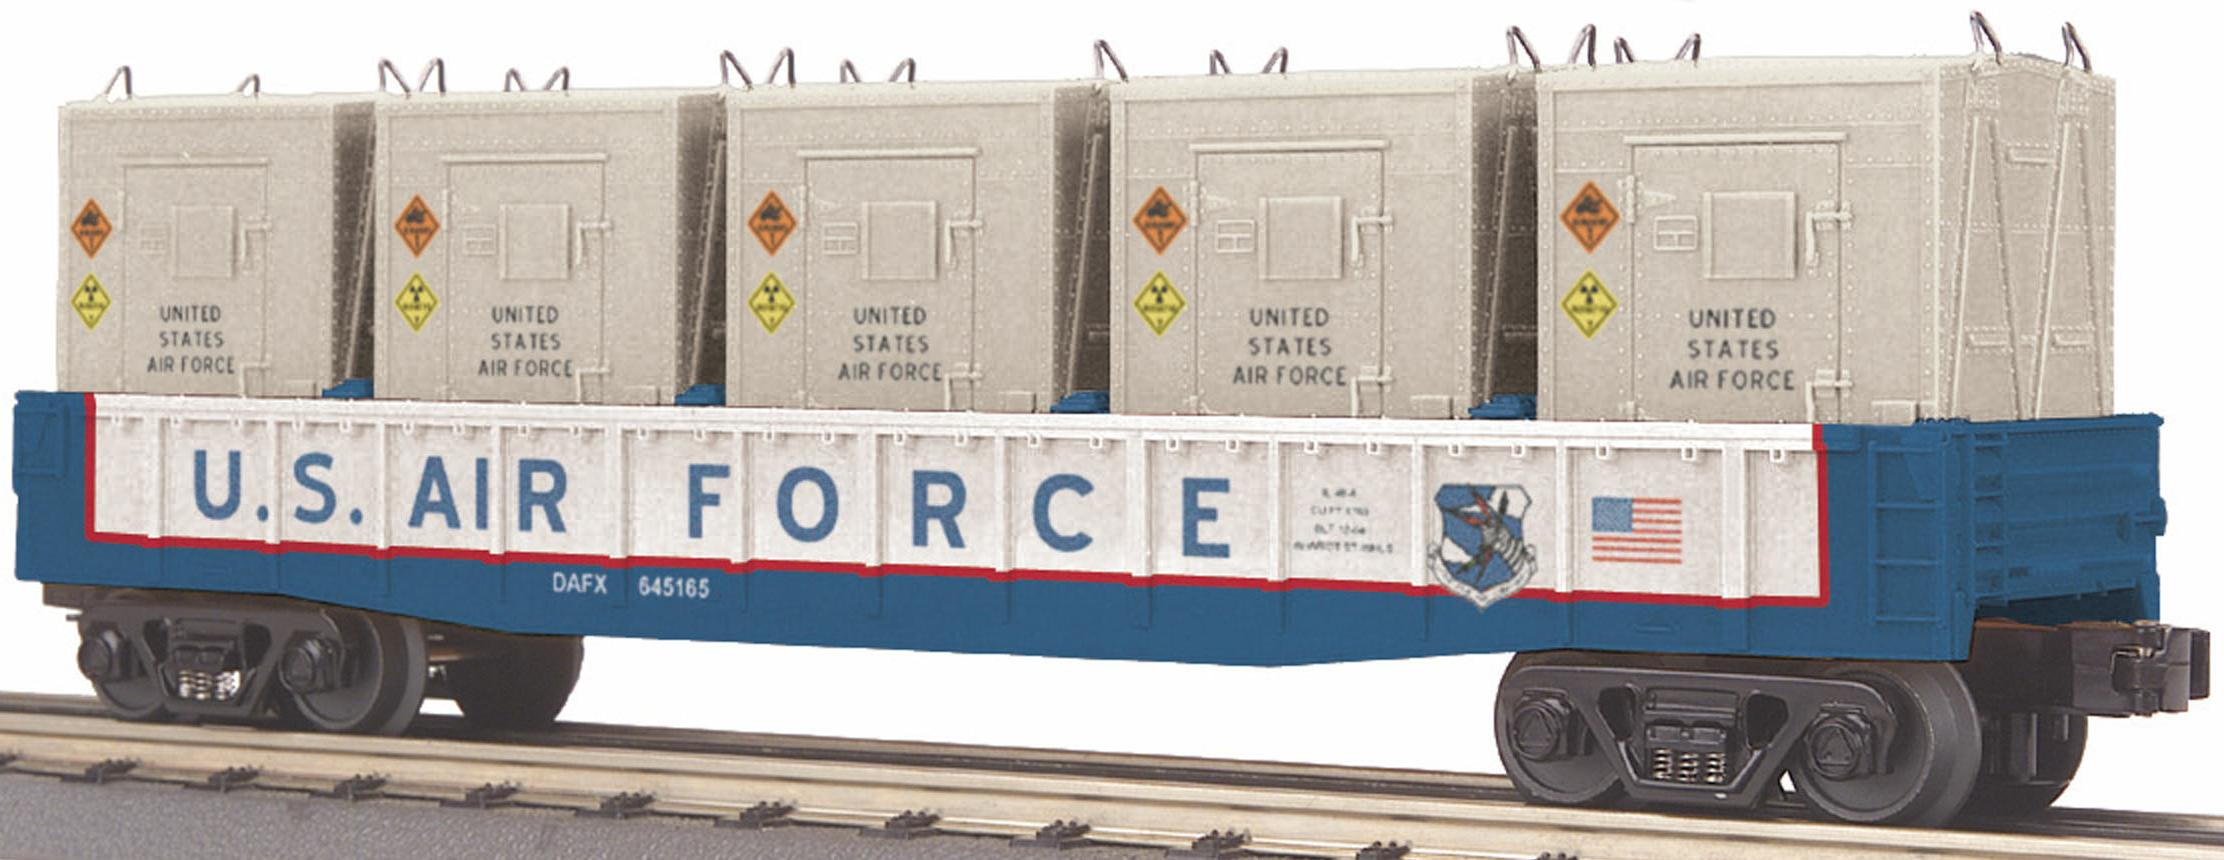 U.S. Air Force Gondola w/5 LCL Containers image